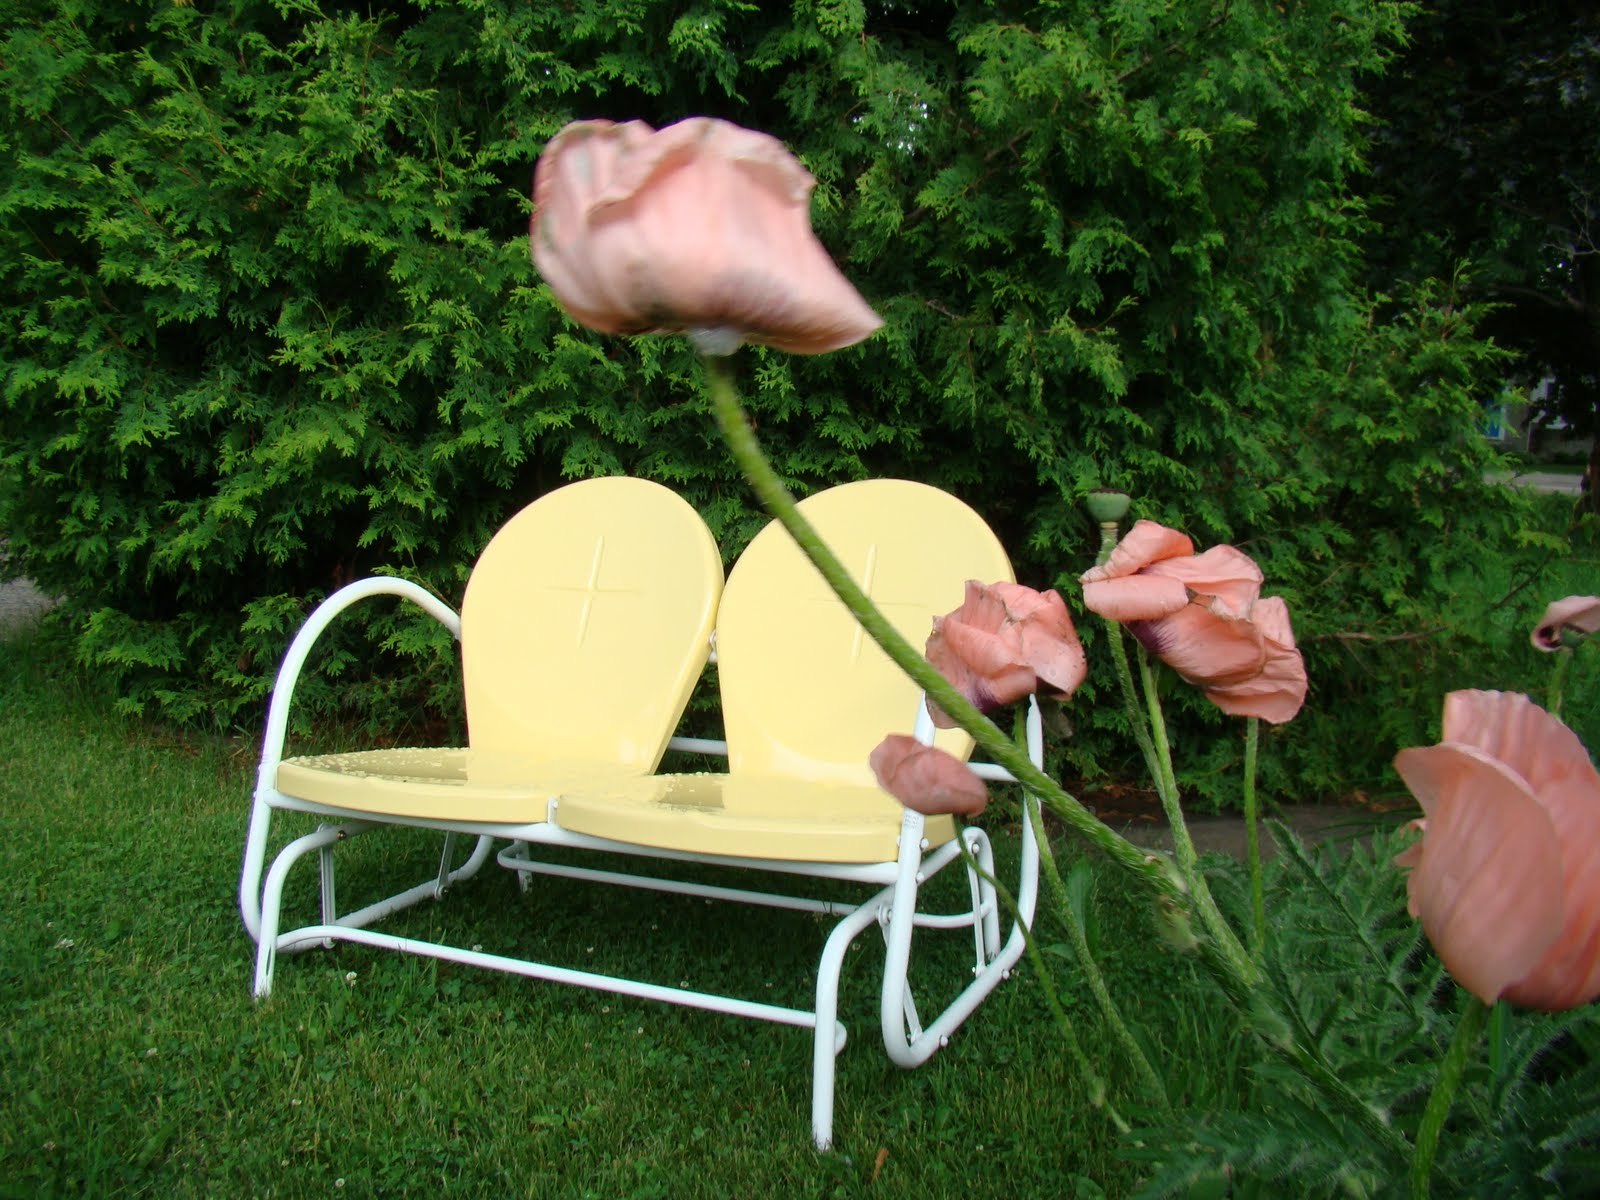 Retro Lawn Chairs Living Vintage Retro Lawn Furniture